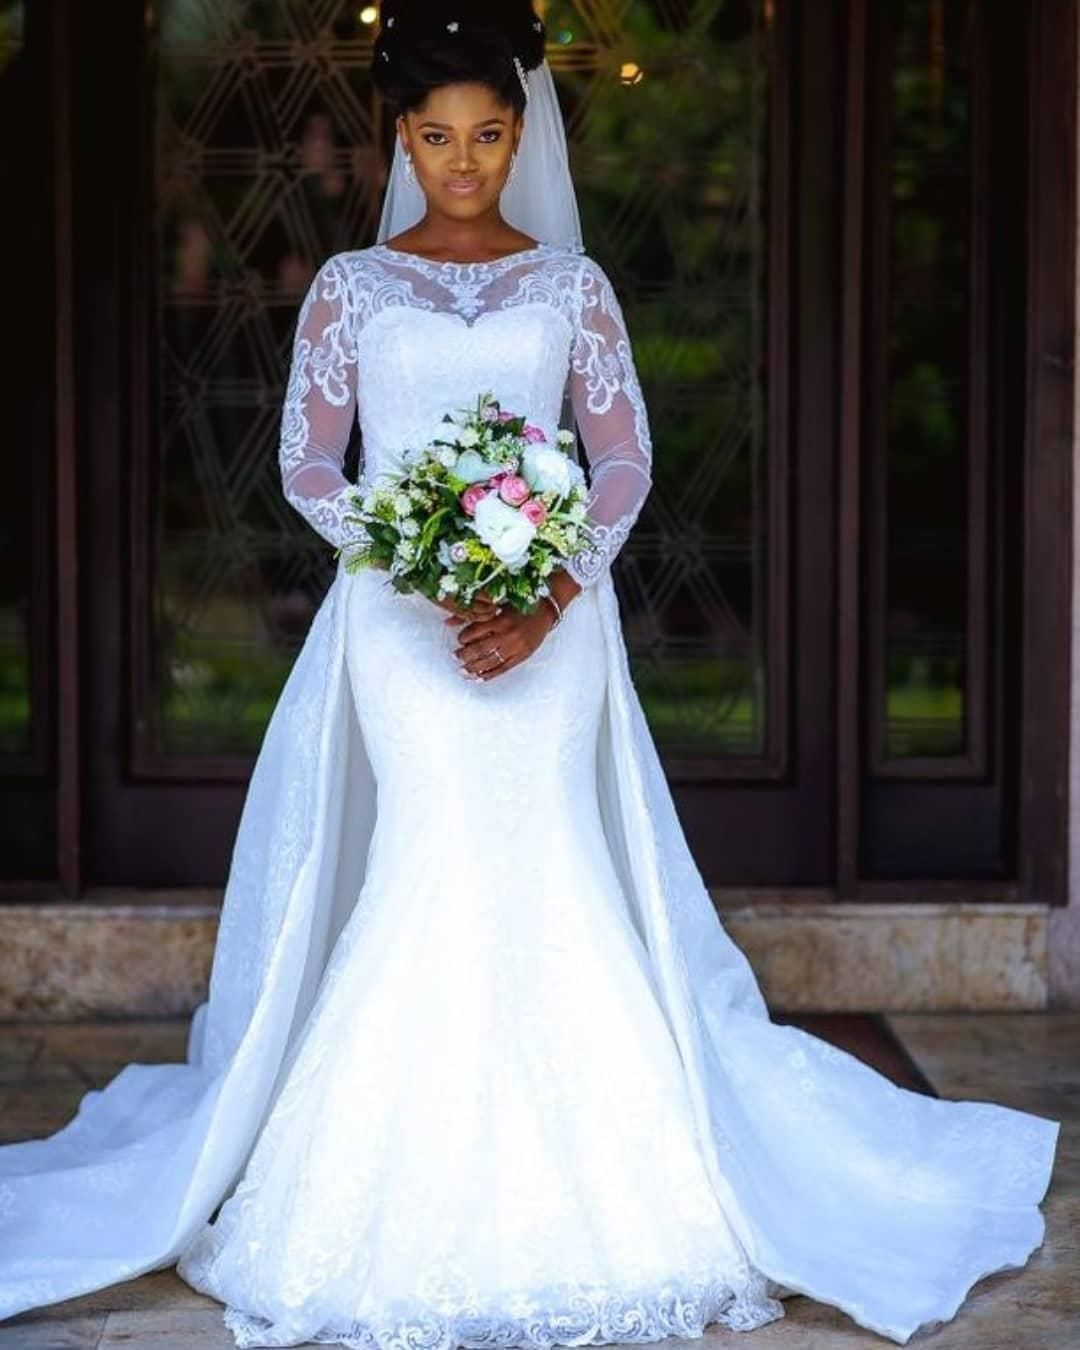 Cheap White Ivory Wedding Dresses Mermaid Lace Appliques: Details About 2019 White Ivory Mermaid Wedding Dresses